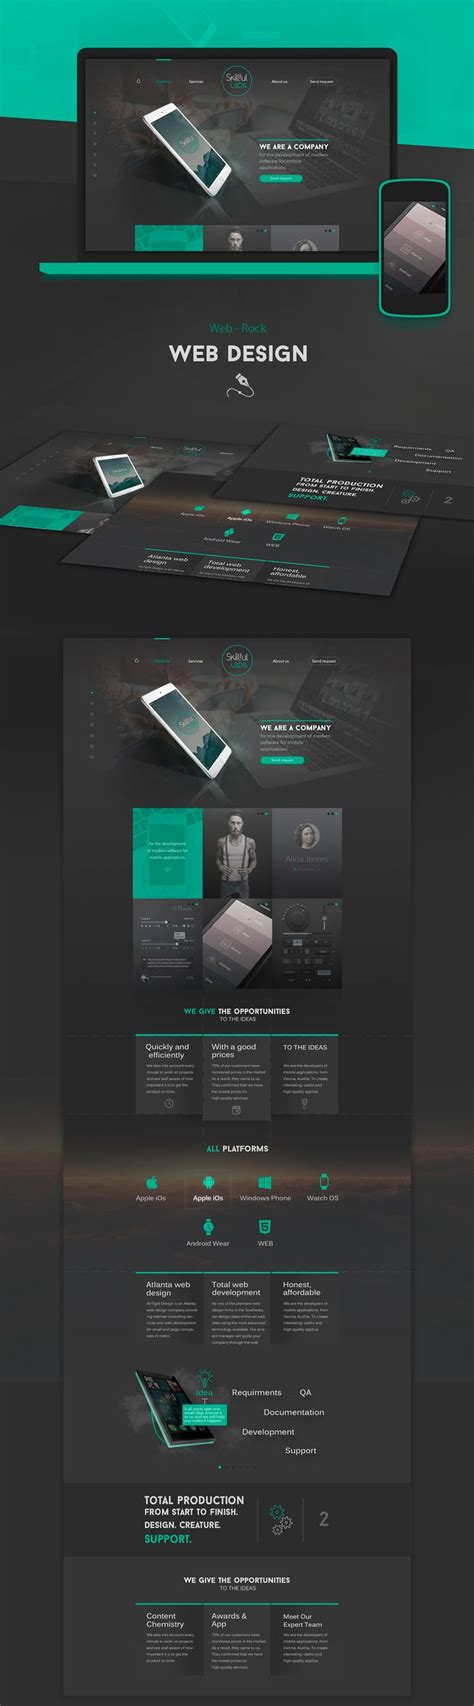 web design ideas 25 best ideas about web design on pinterest website layout ui design and web ui design